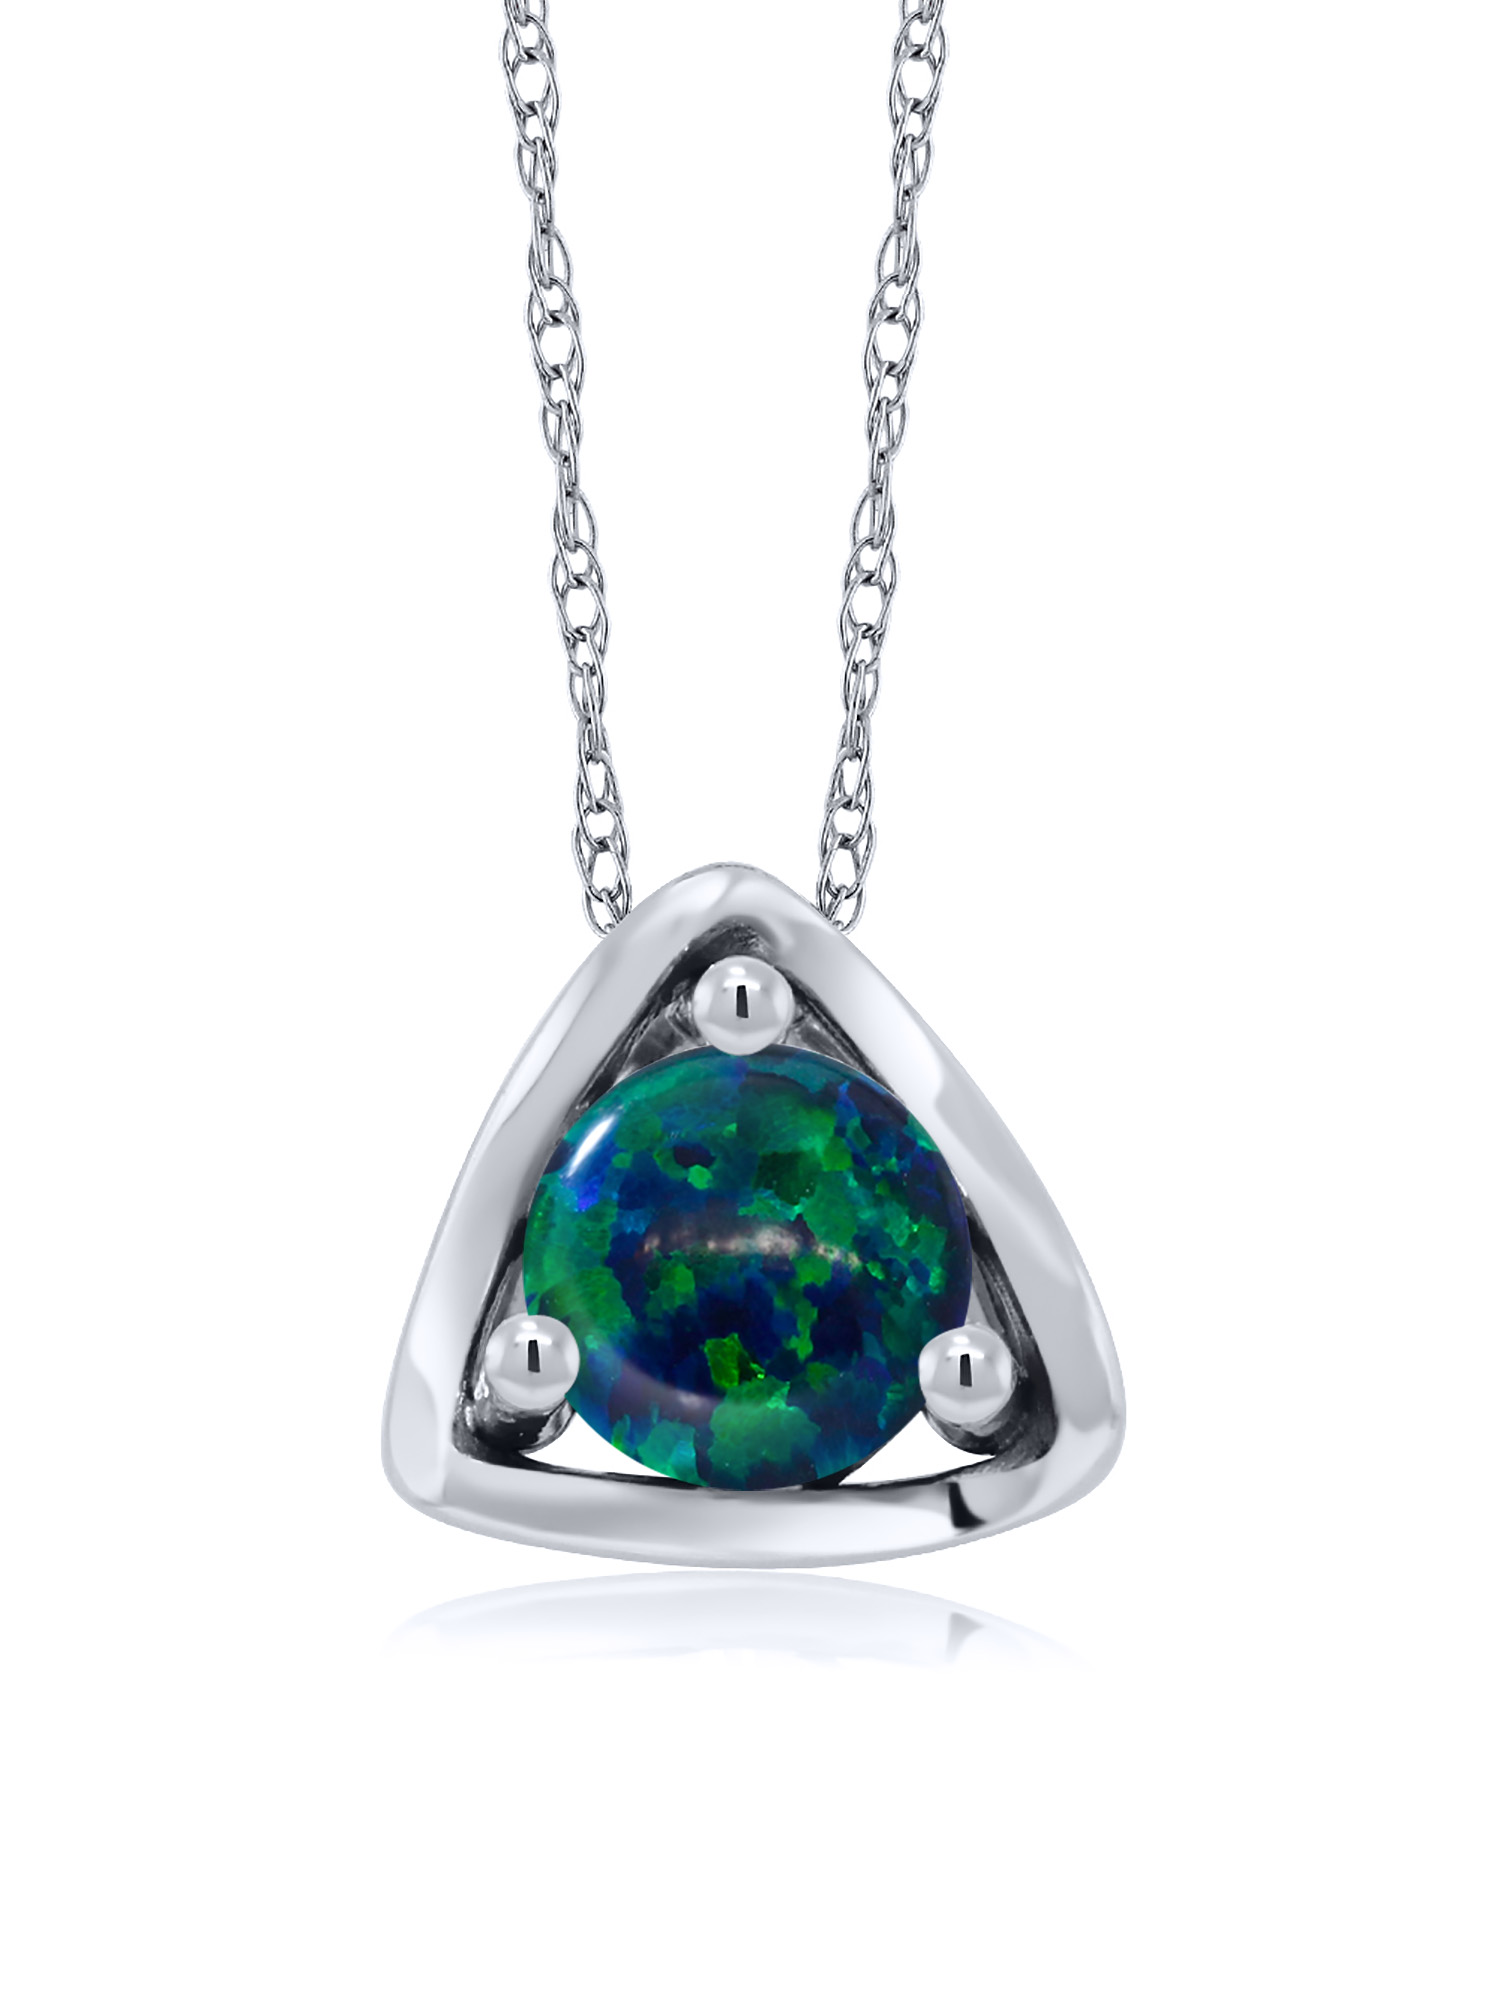 0.50 Ct Round Cabochon Green Simulated Opal 10K White Gold Pendant With Chain by